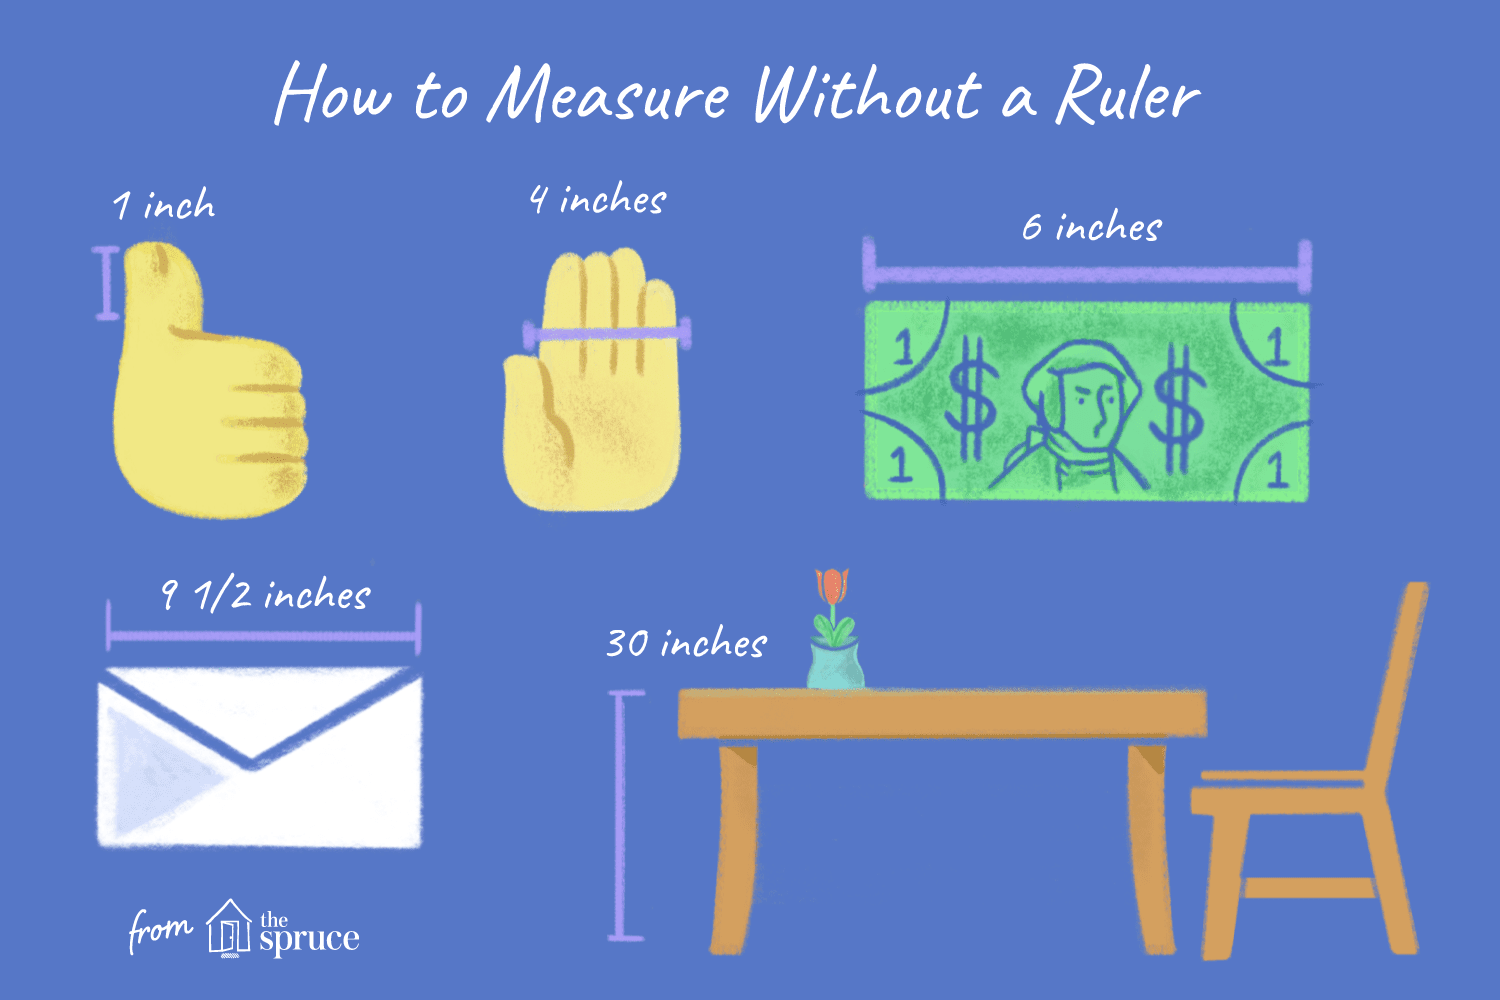 How Do You Estimate Measurements Without A Ruler Or Tape Measure